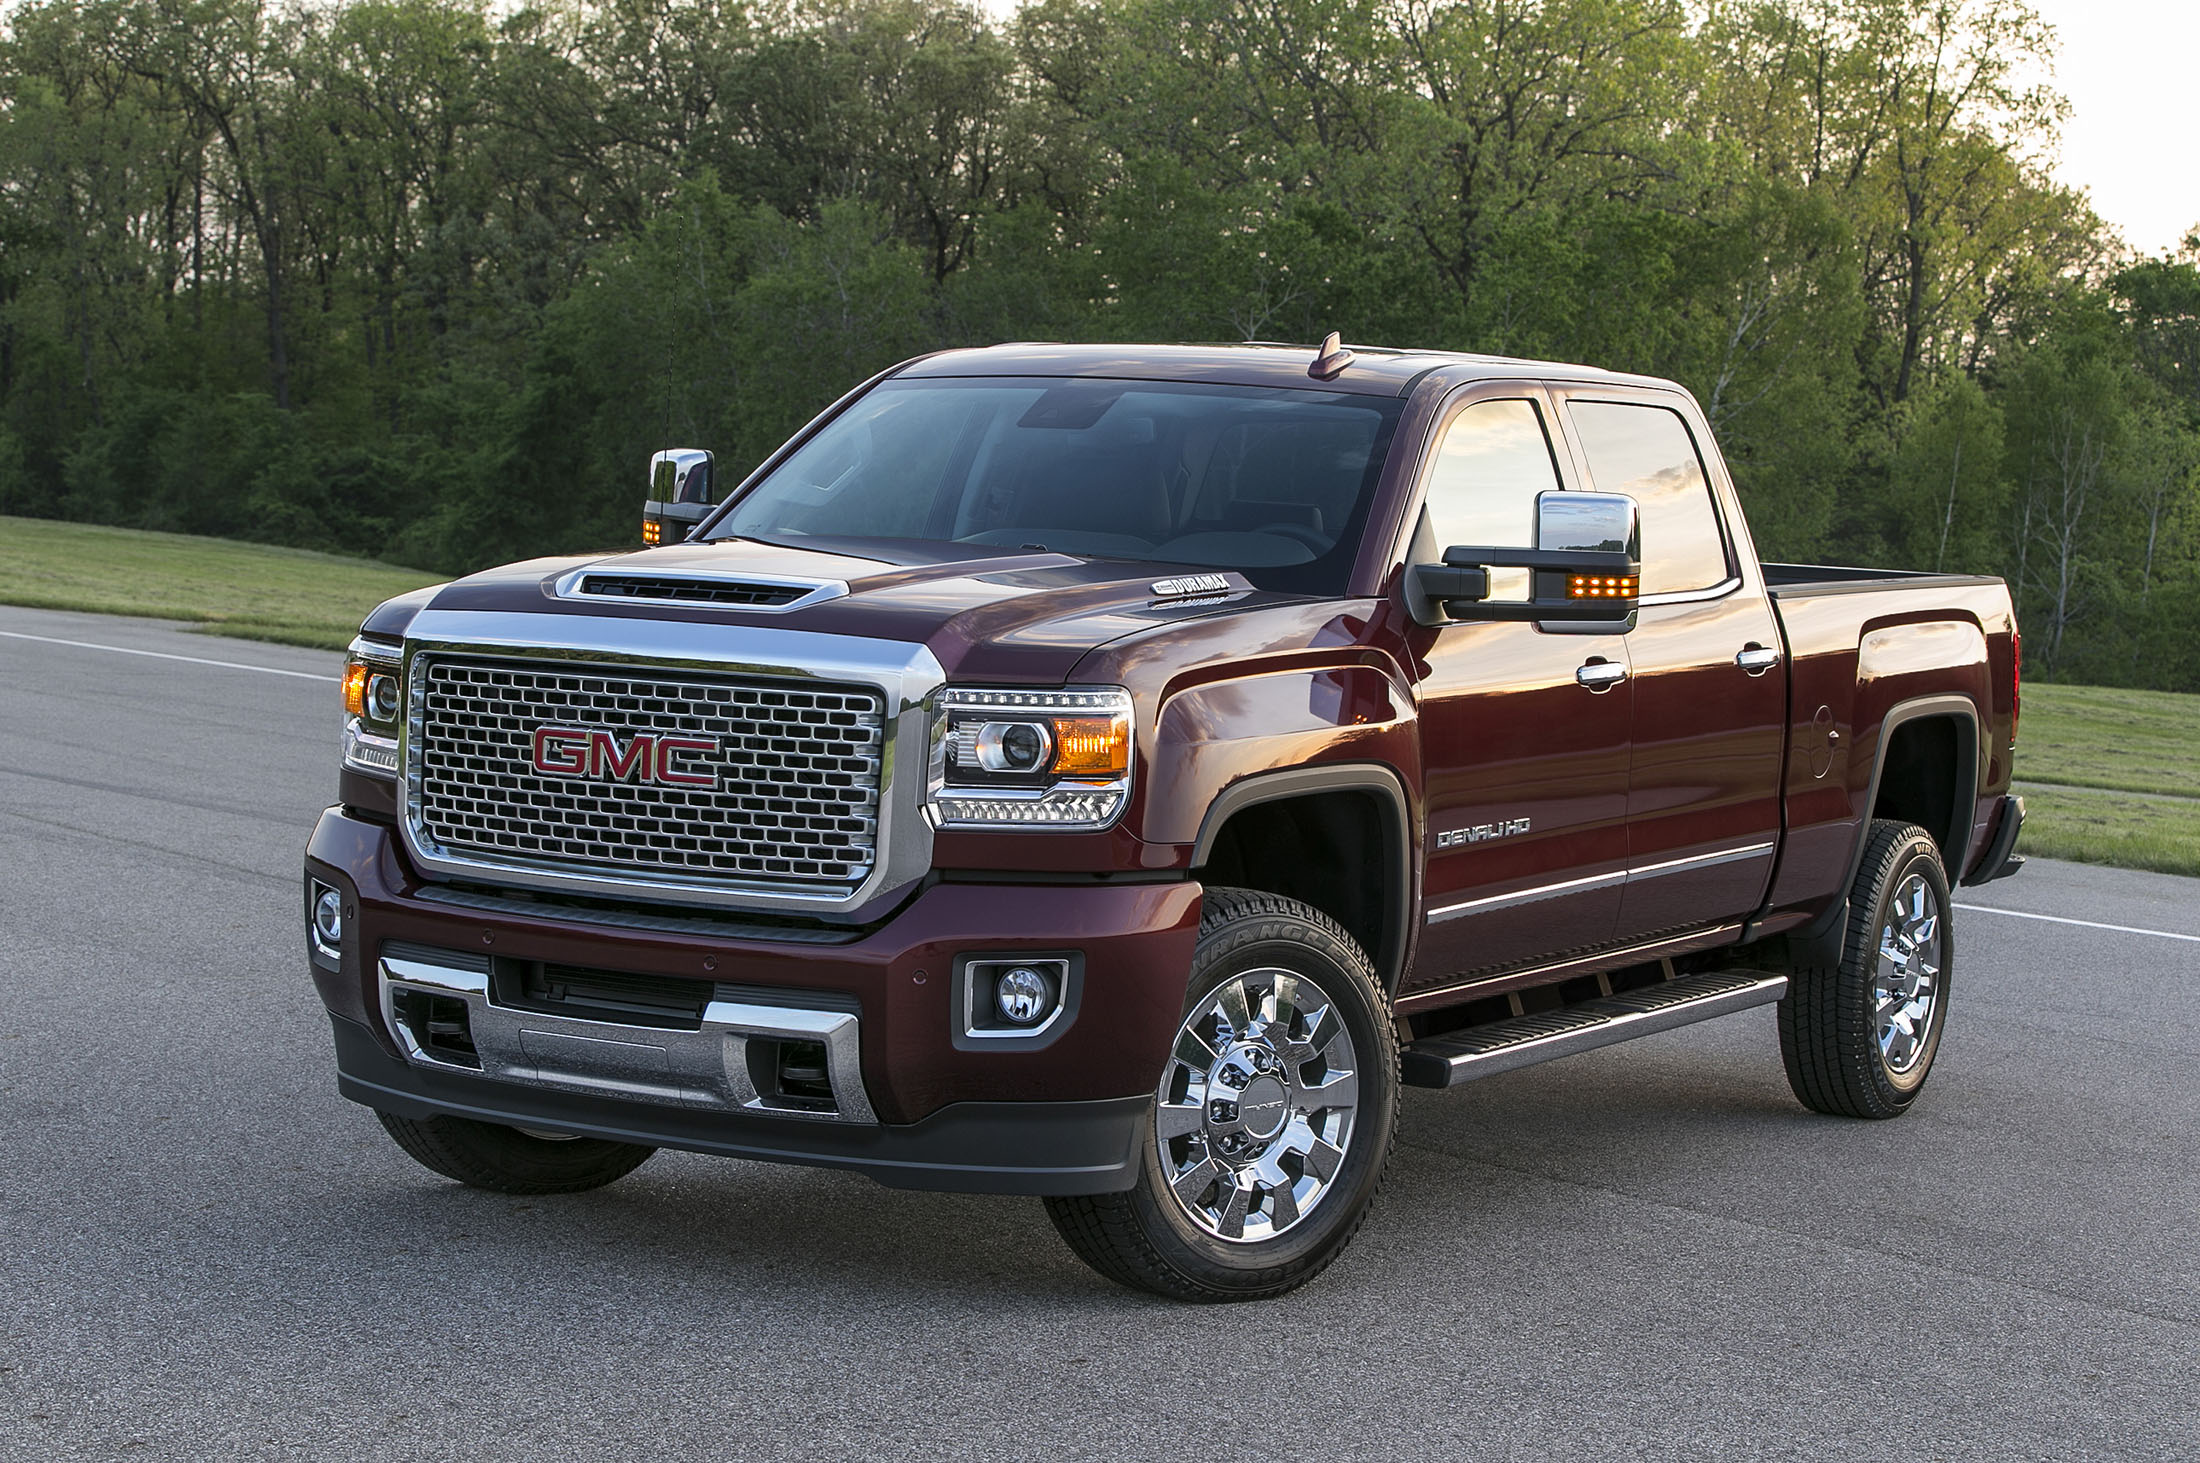 Gm Adds B20 Biodiesel Capability To Chevy Gmc Diesel Trucks Cars